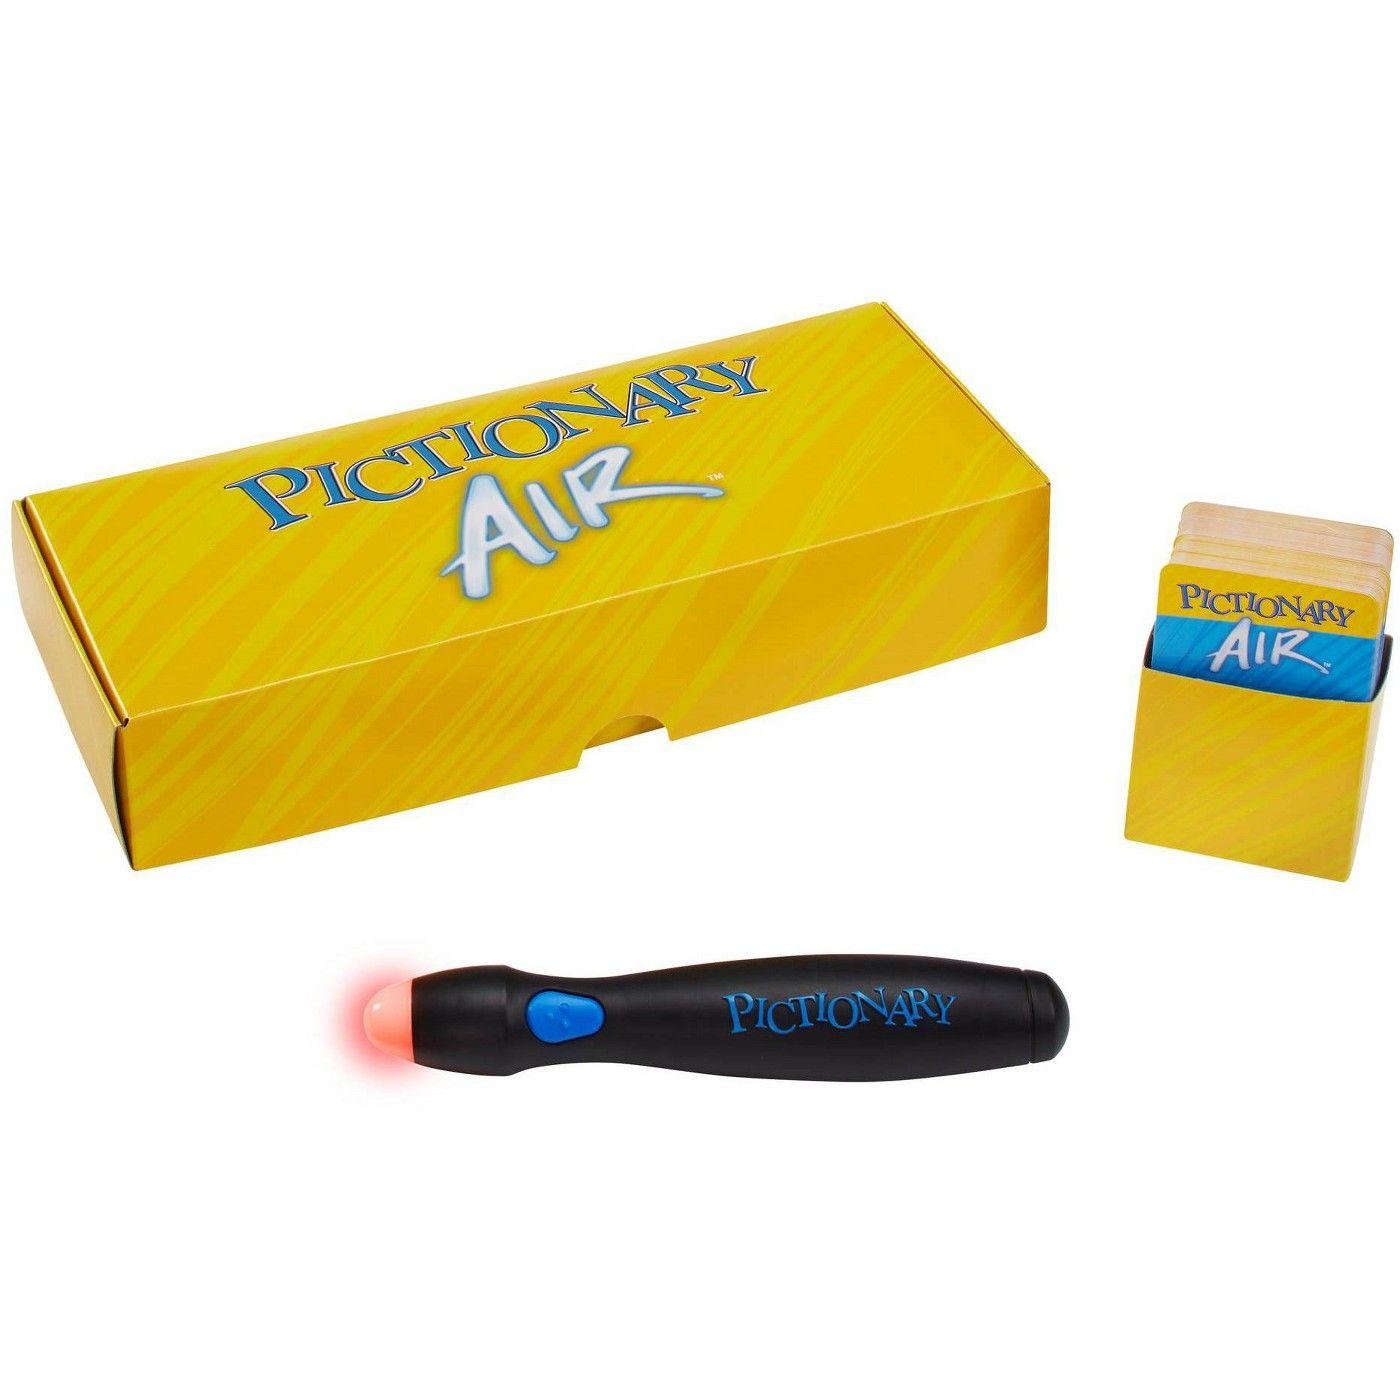 PICTIONARY Air